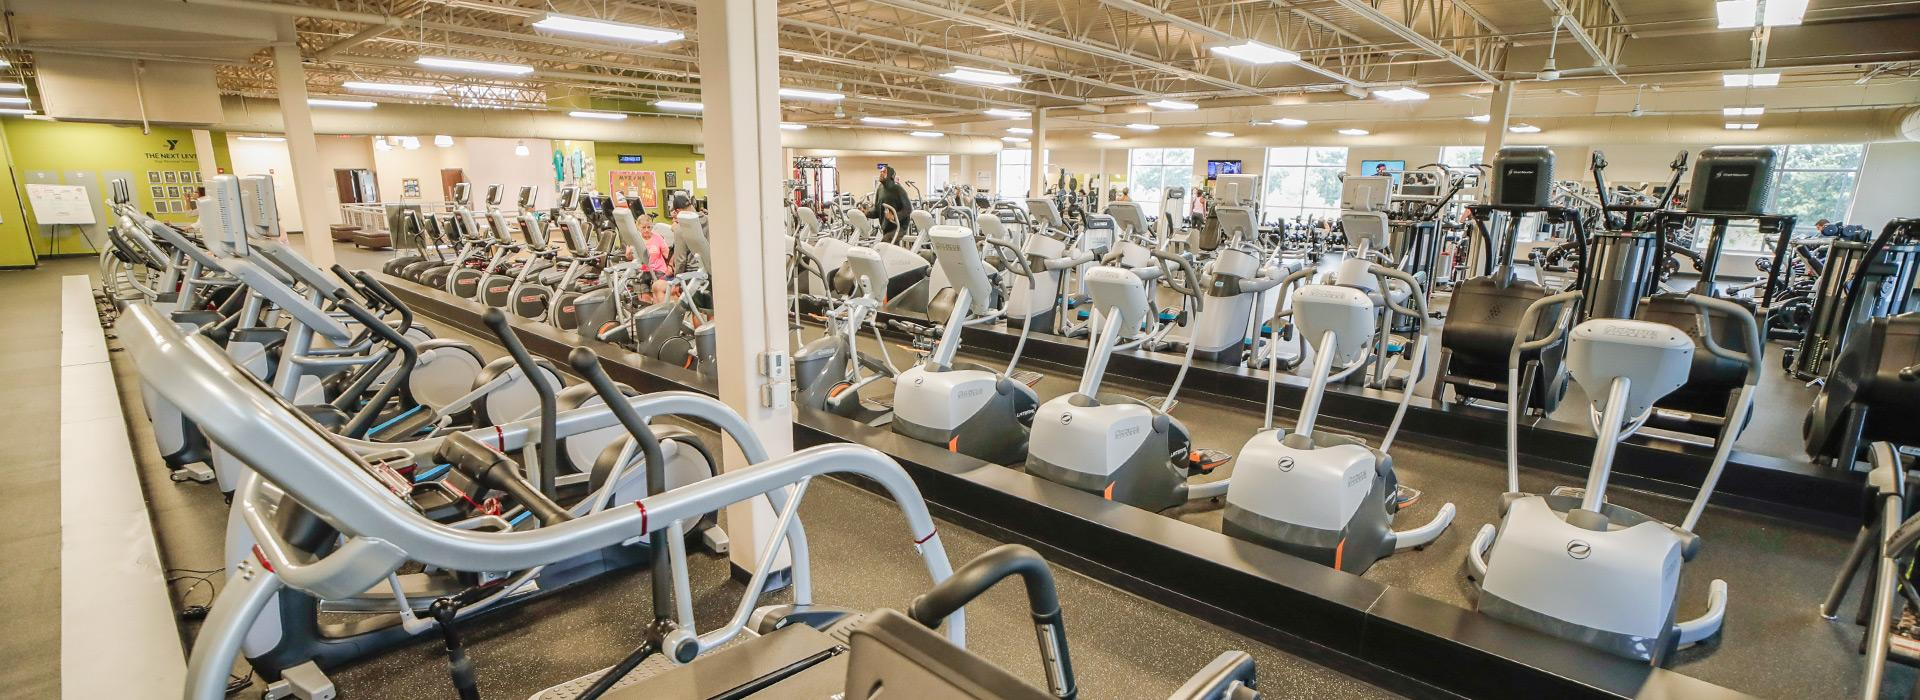 Cardio equipment including treadmills, ellipticals, bikes and steppers in the wellness center at the Princess Anne Family YMCA